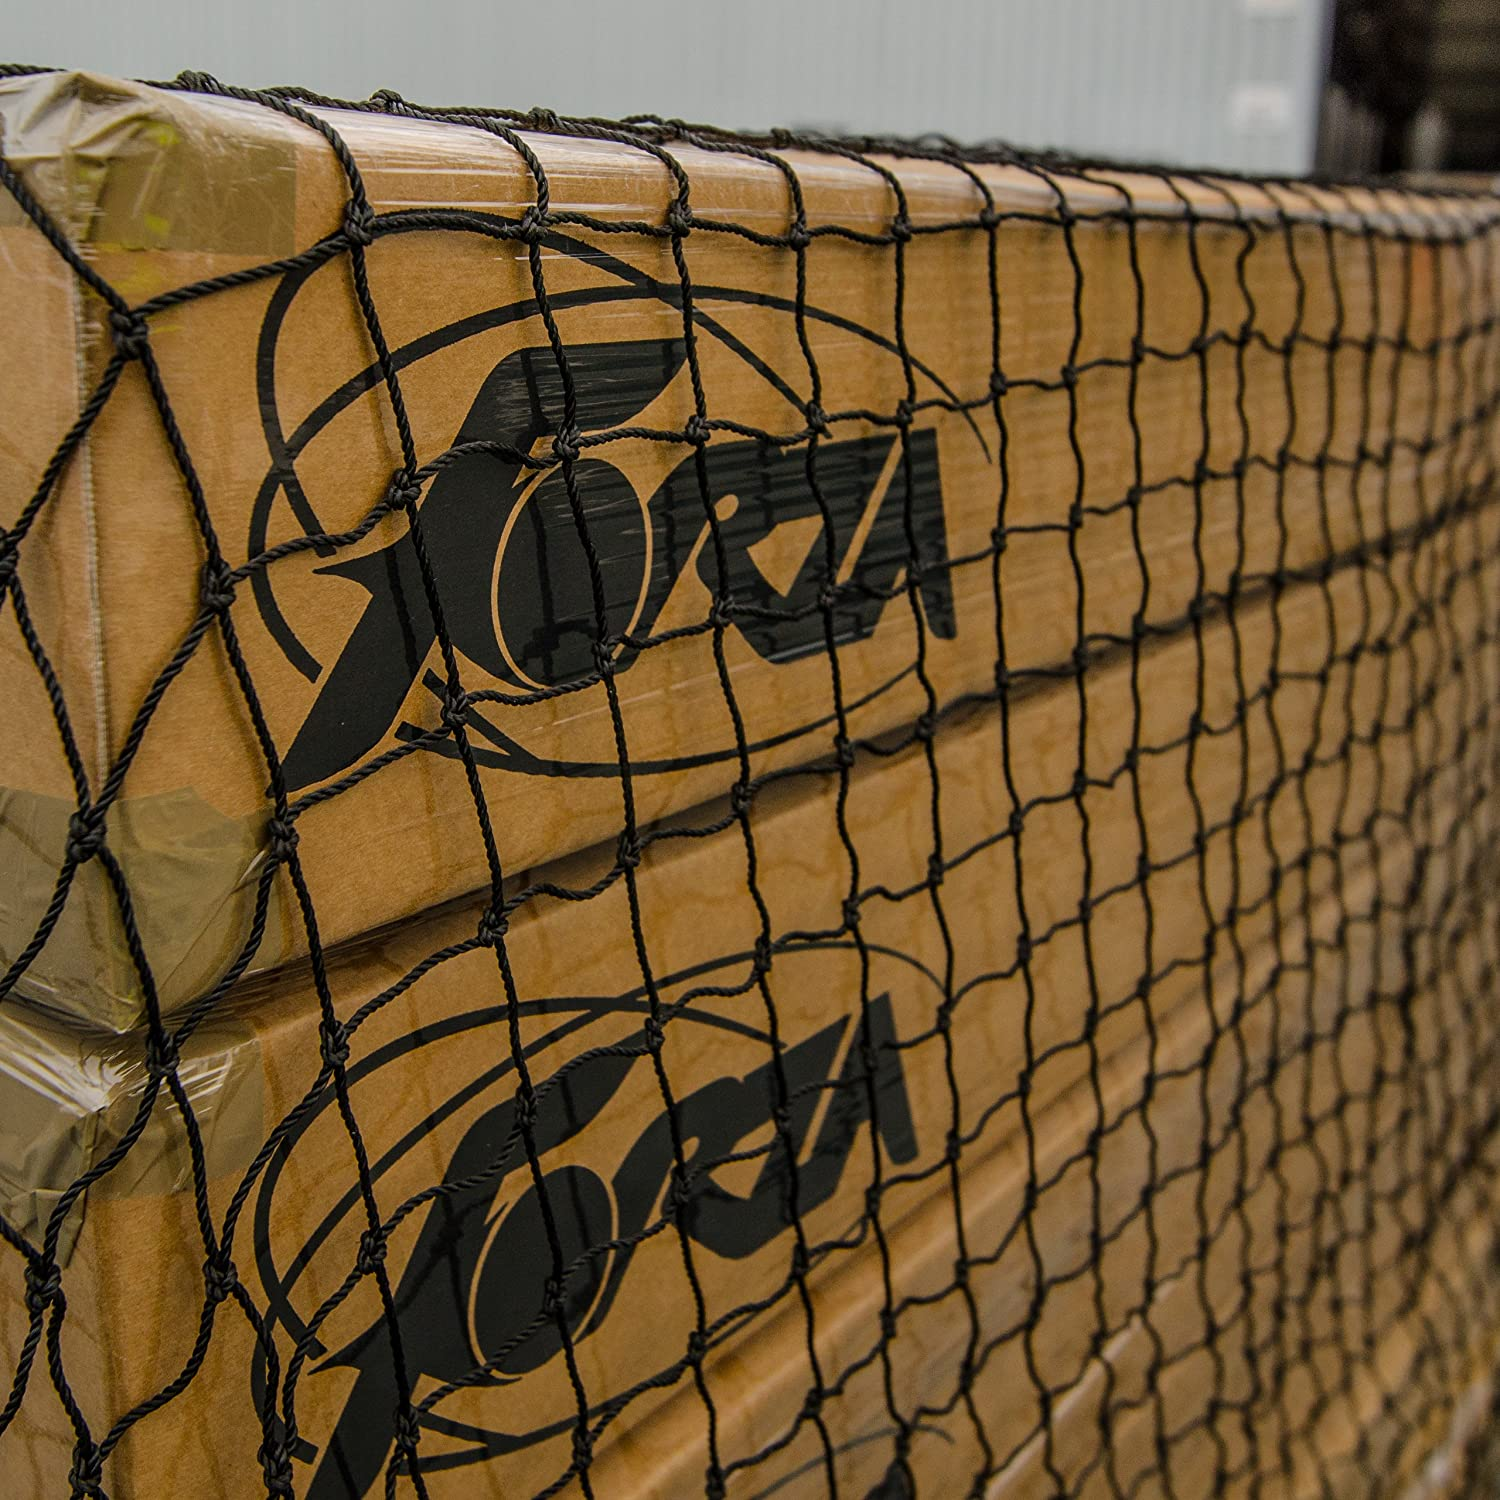 Heavy Duty Skip Net Net World Sports The best cargo net for securing loads in trailers 20ft x 10ft skips and warehouses.